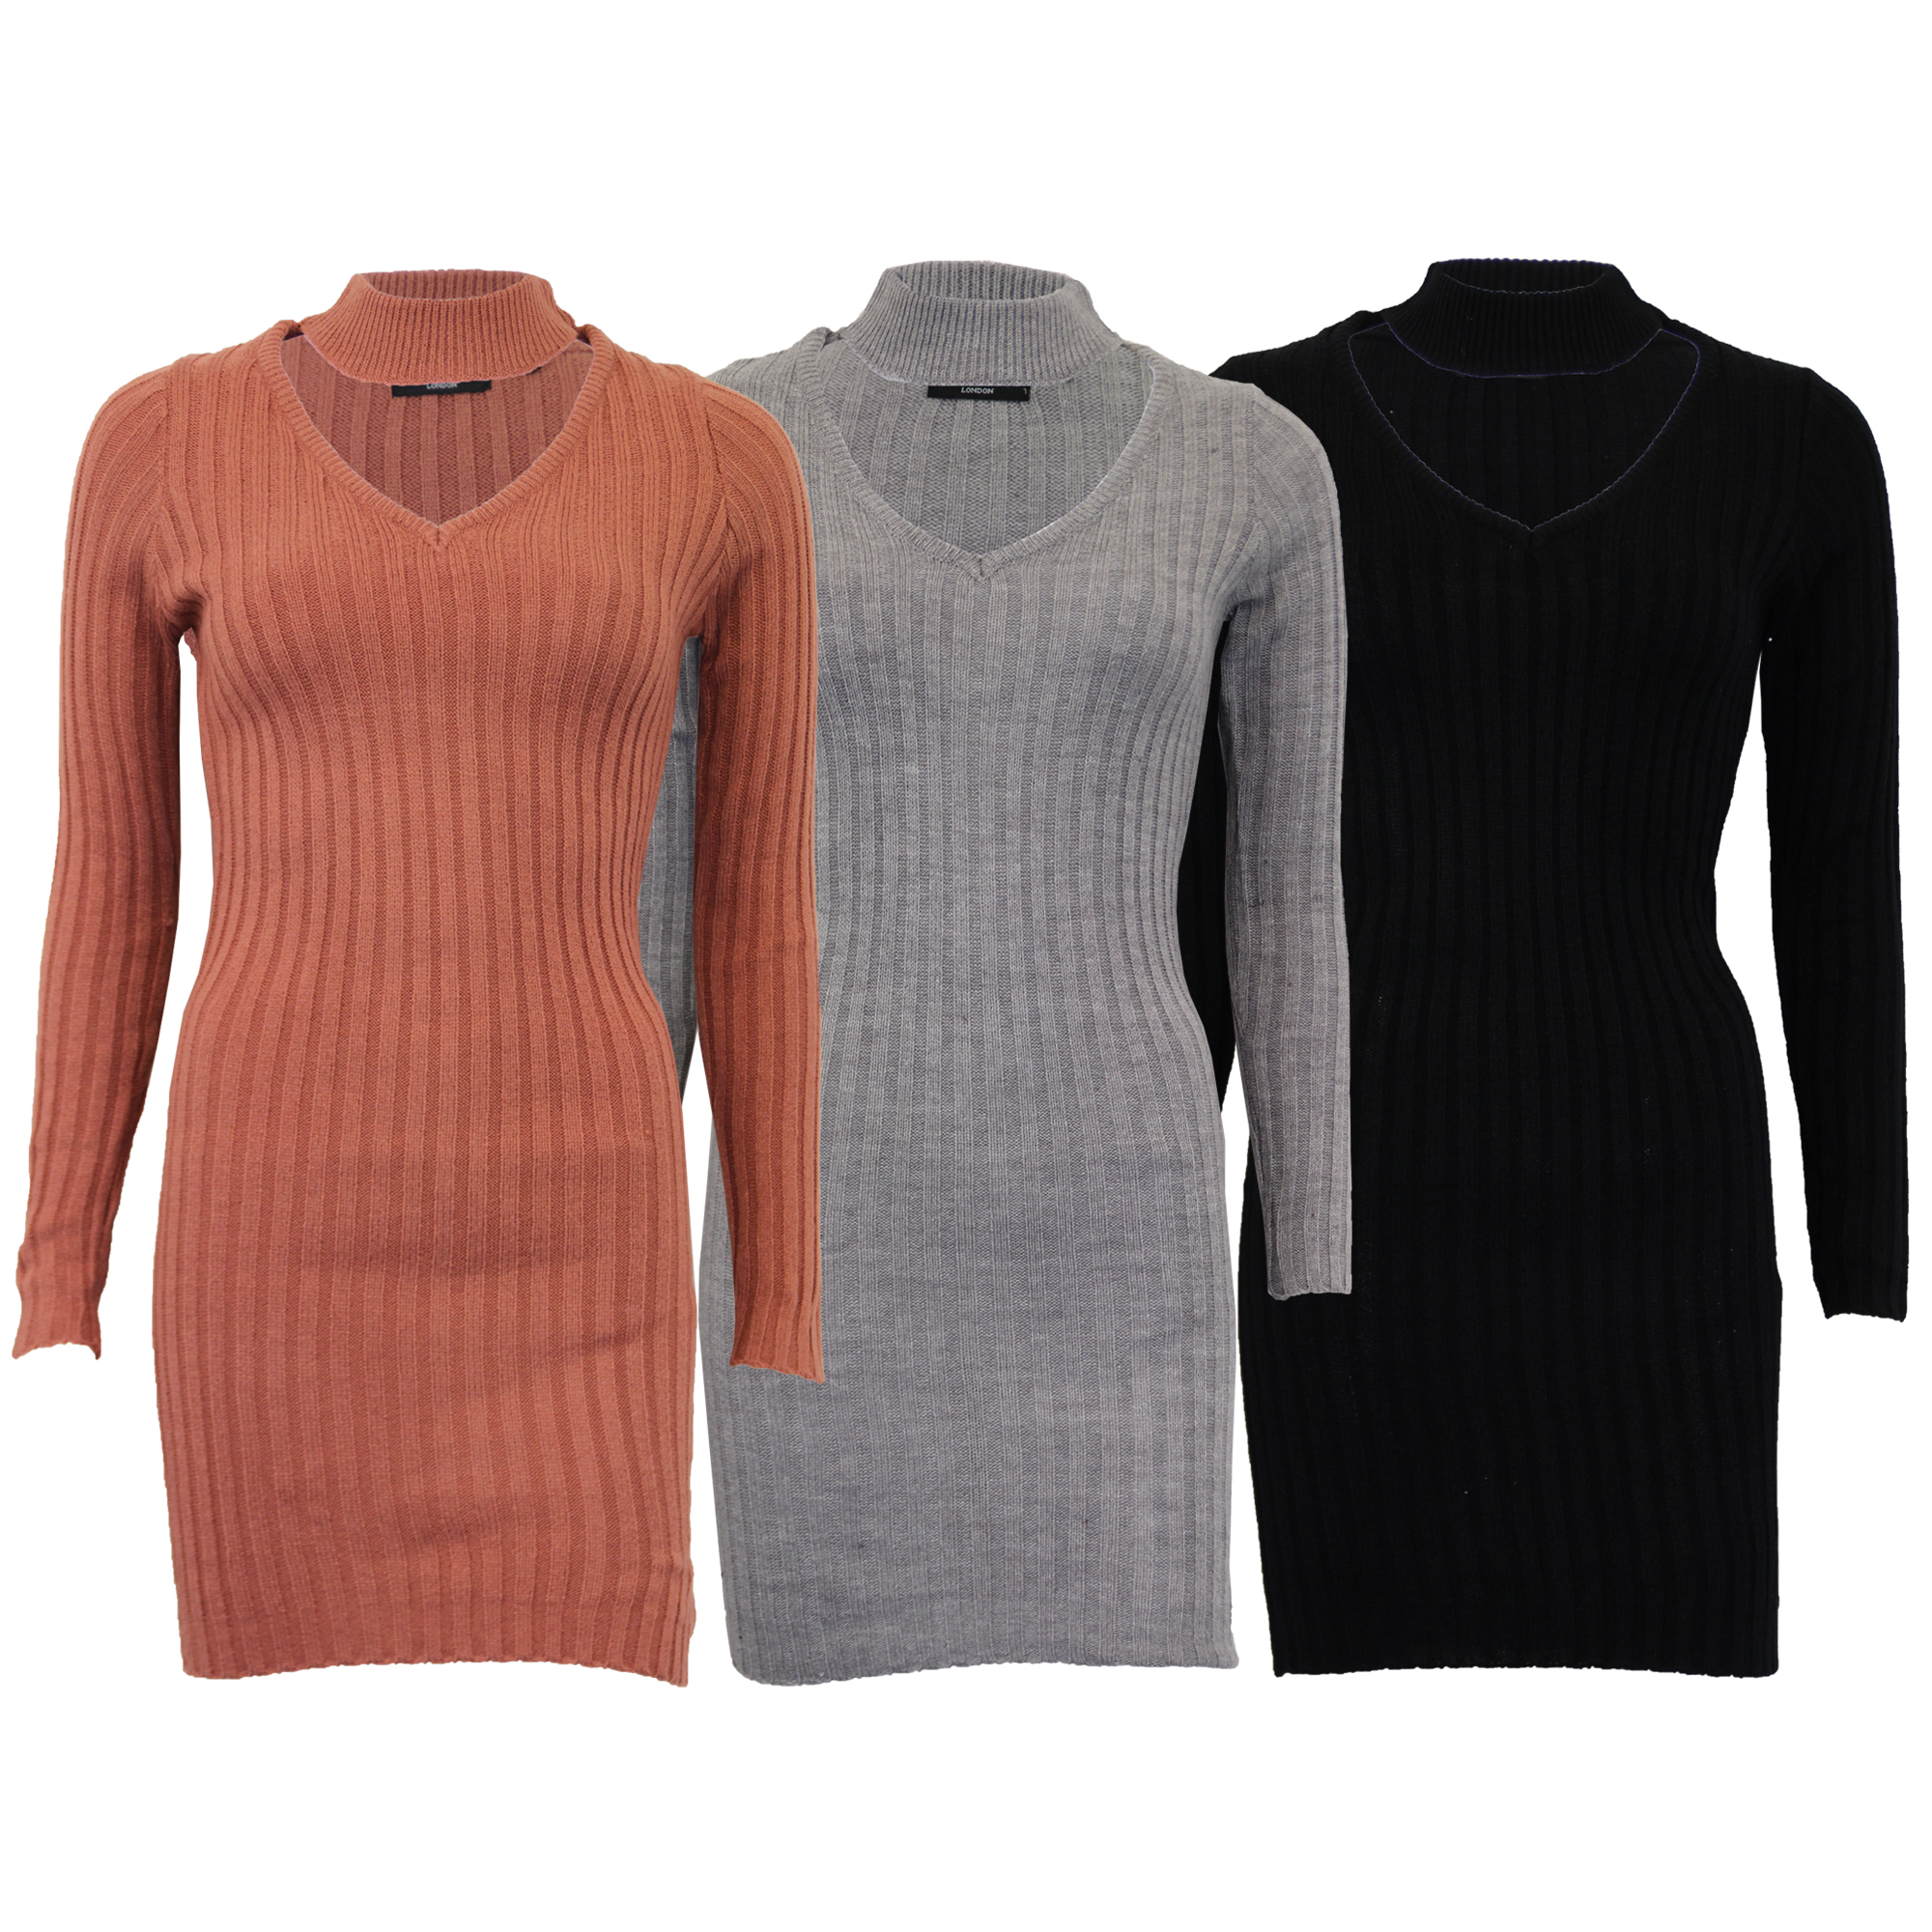 Details about Ladies Jumpers Brave Soul Womens Knitted Long Dress Choker Neck Ribbed Winter